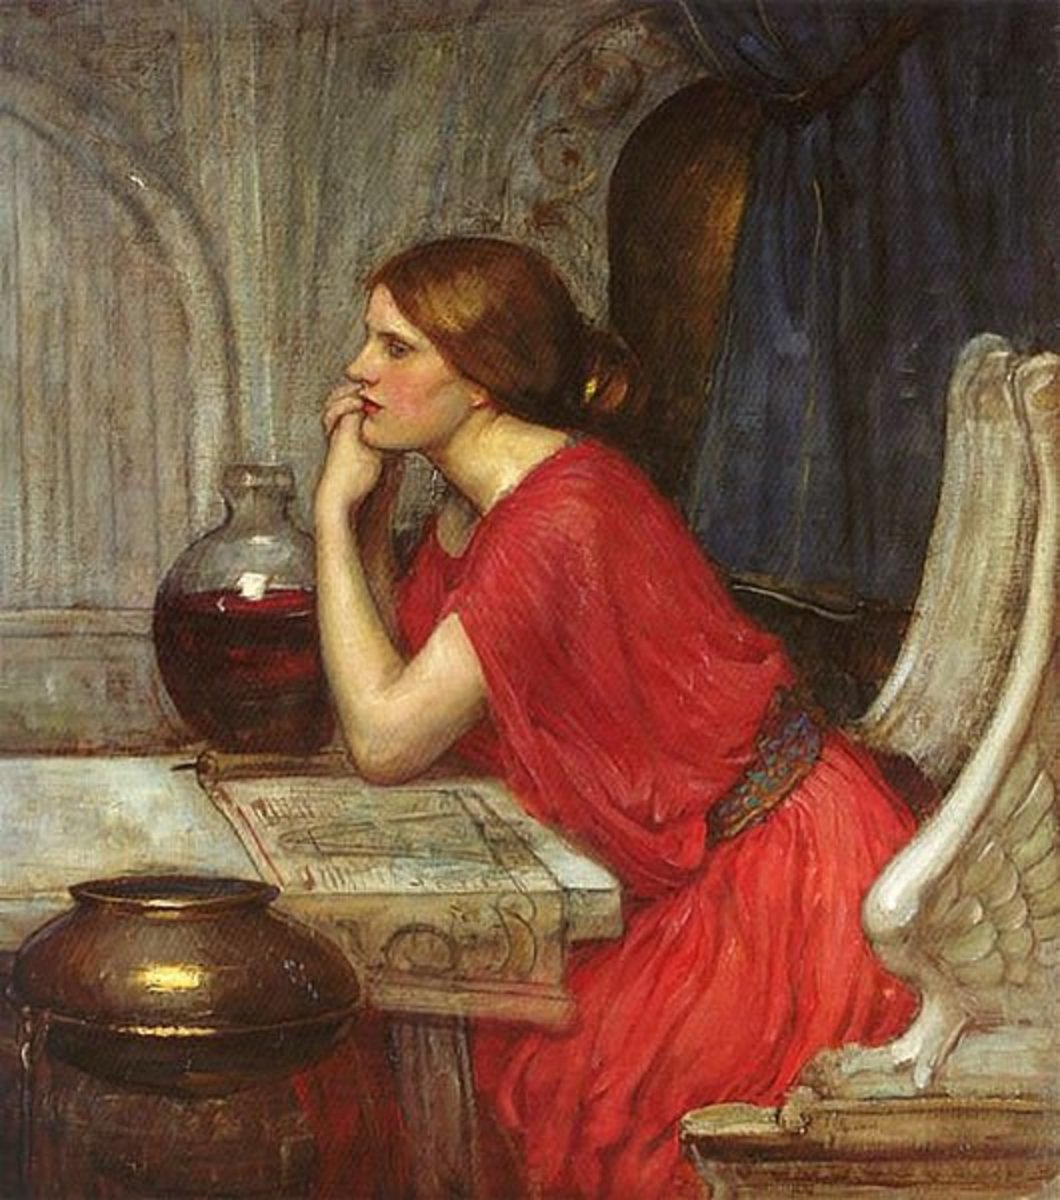 The Sorceress Circe in Greek Mythology